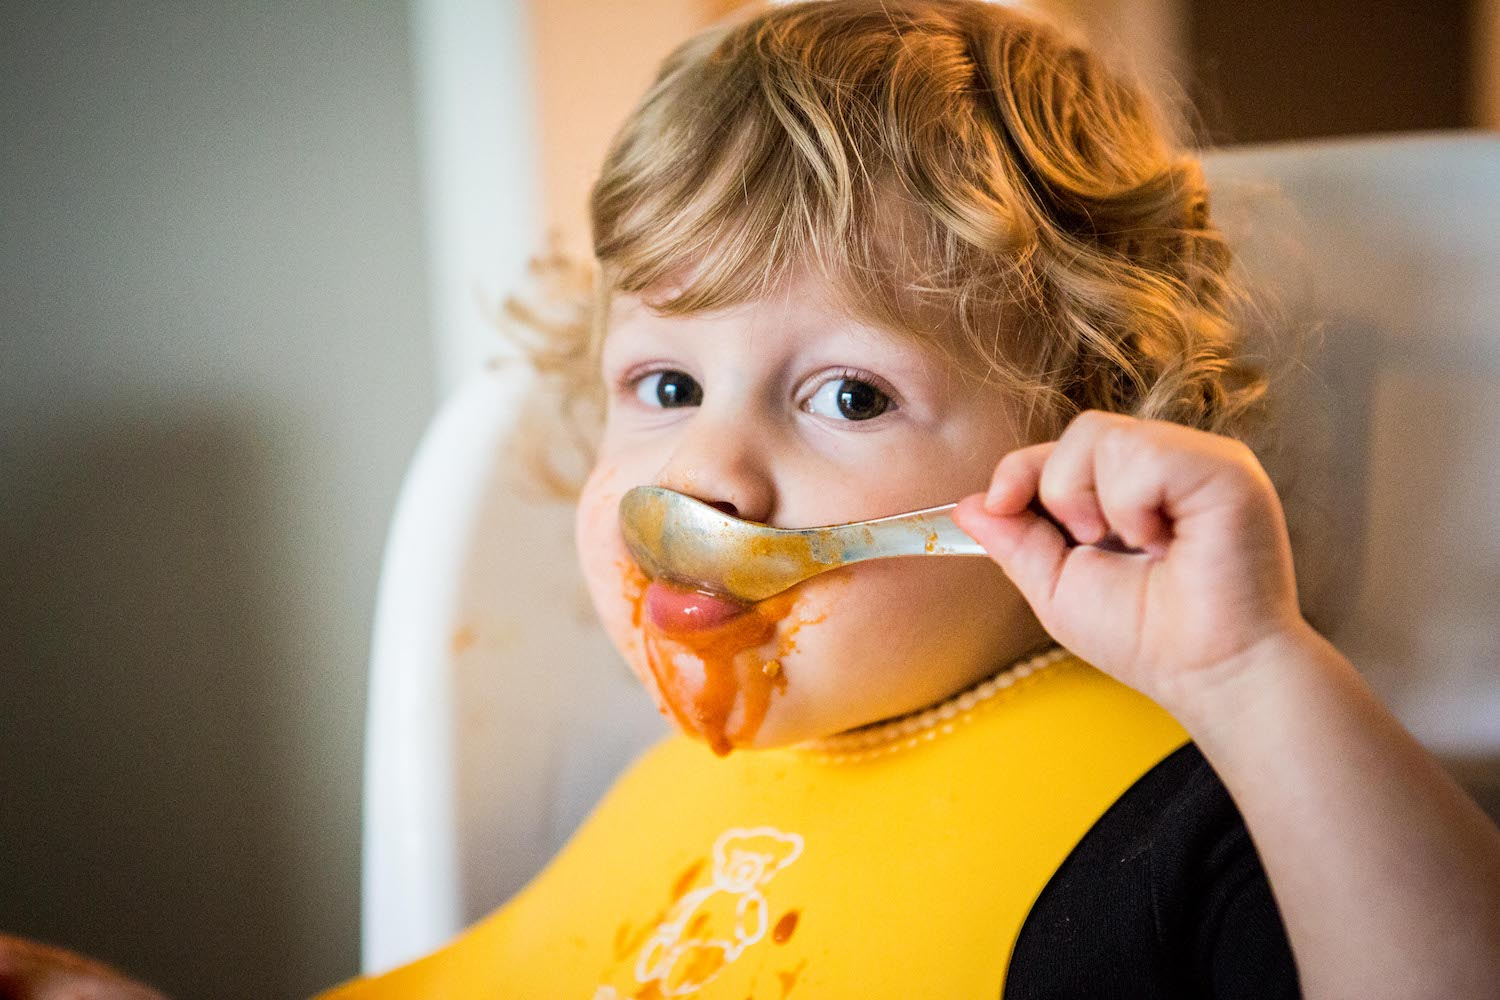 Mastering eating soup with a spoon.